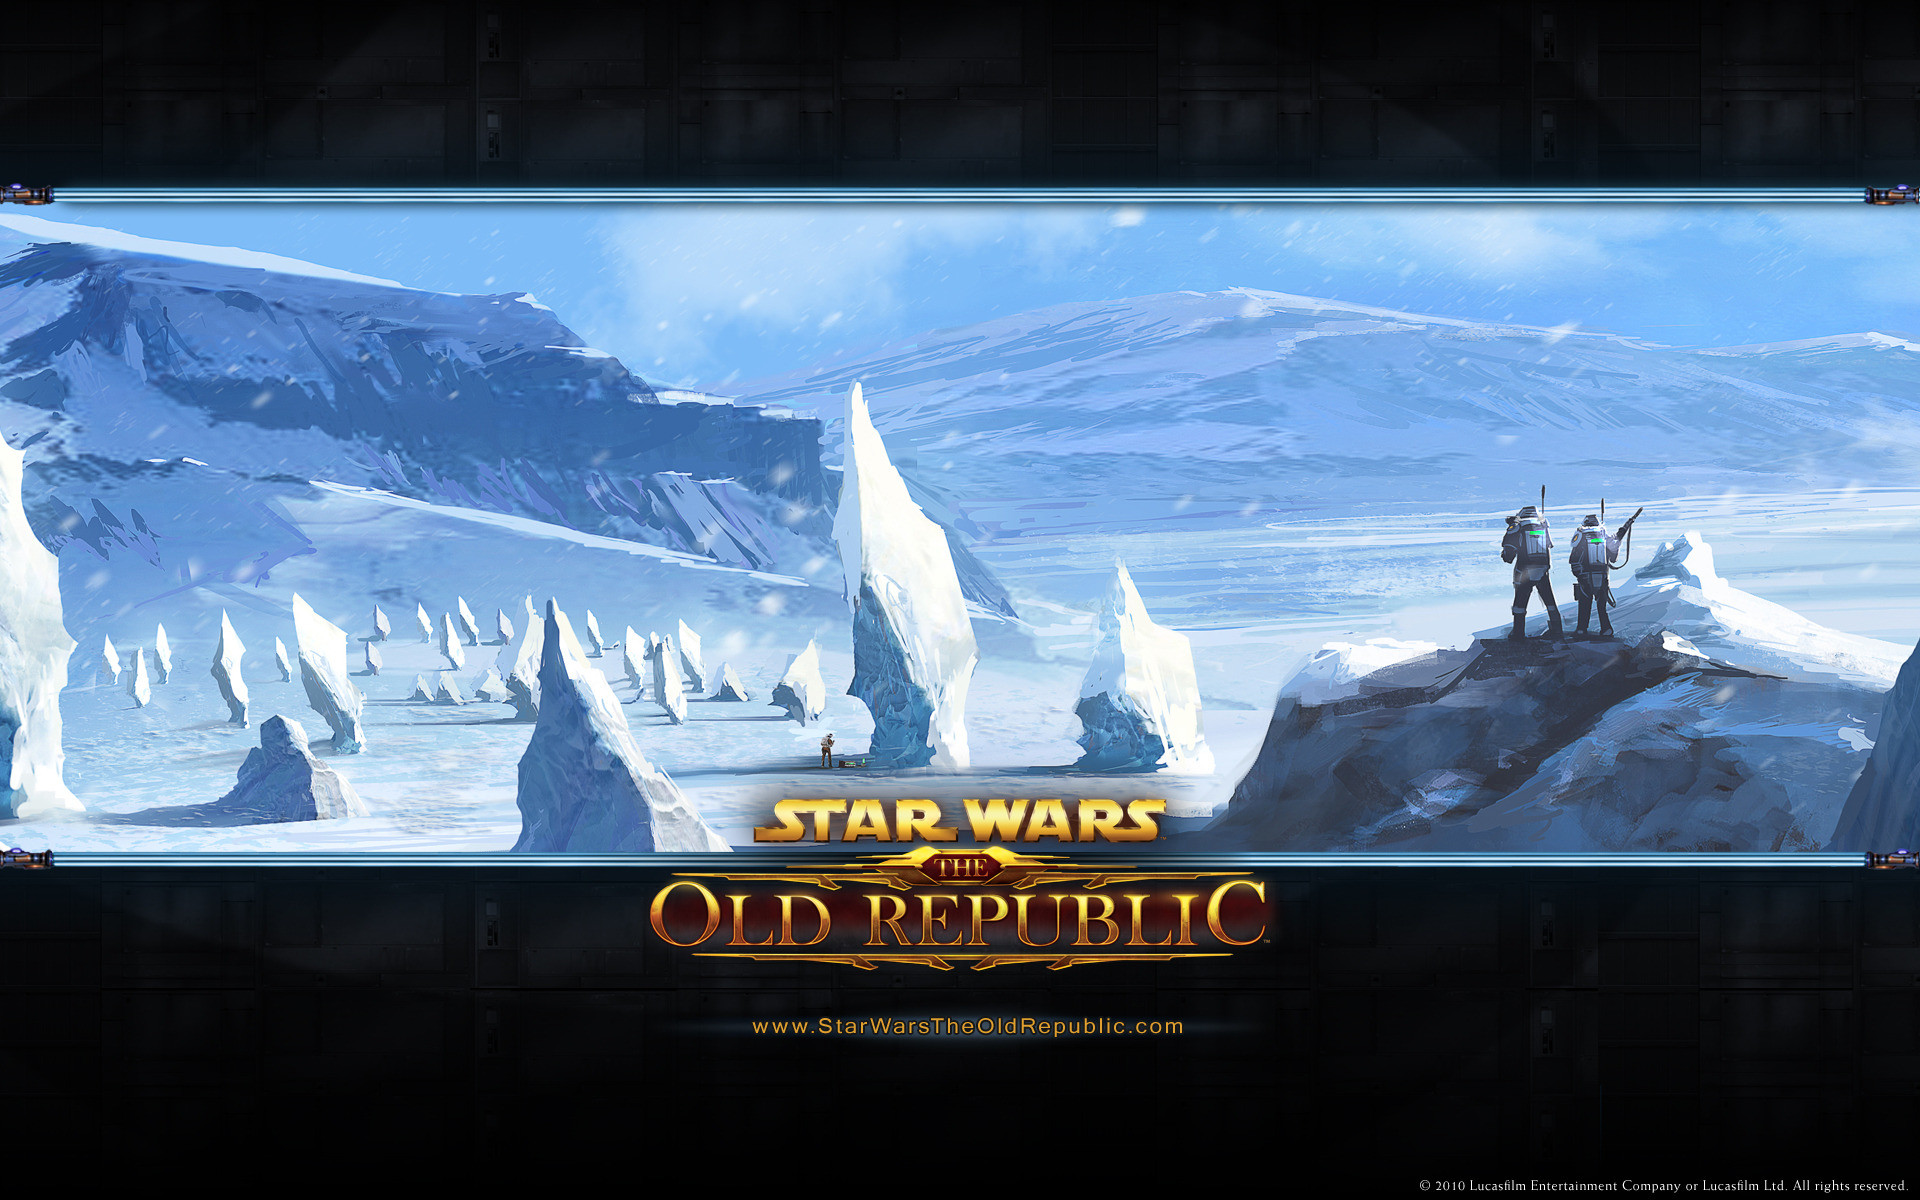 1920x1200 Star wars: The Old Republic - Star Wars Wallpaper (26970273) - Fanpop